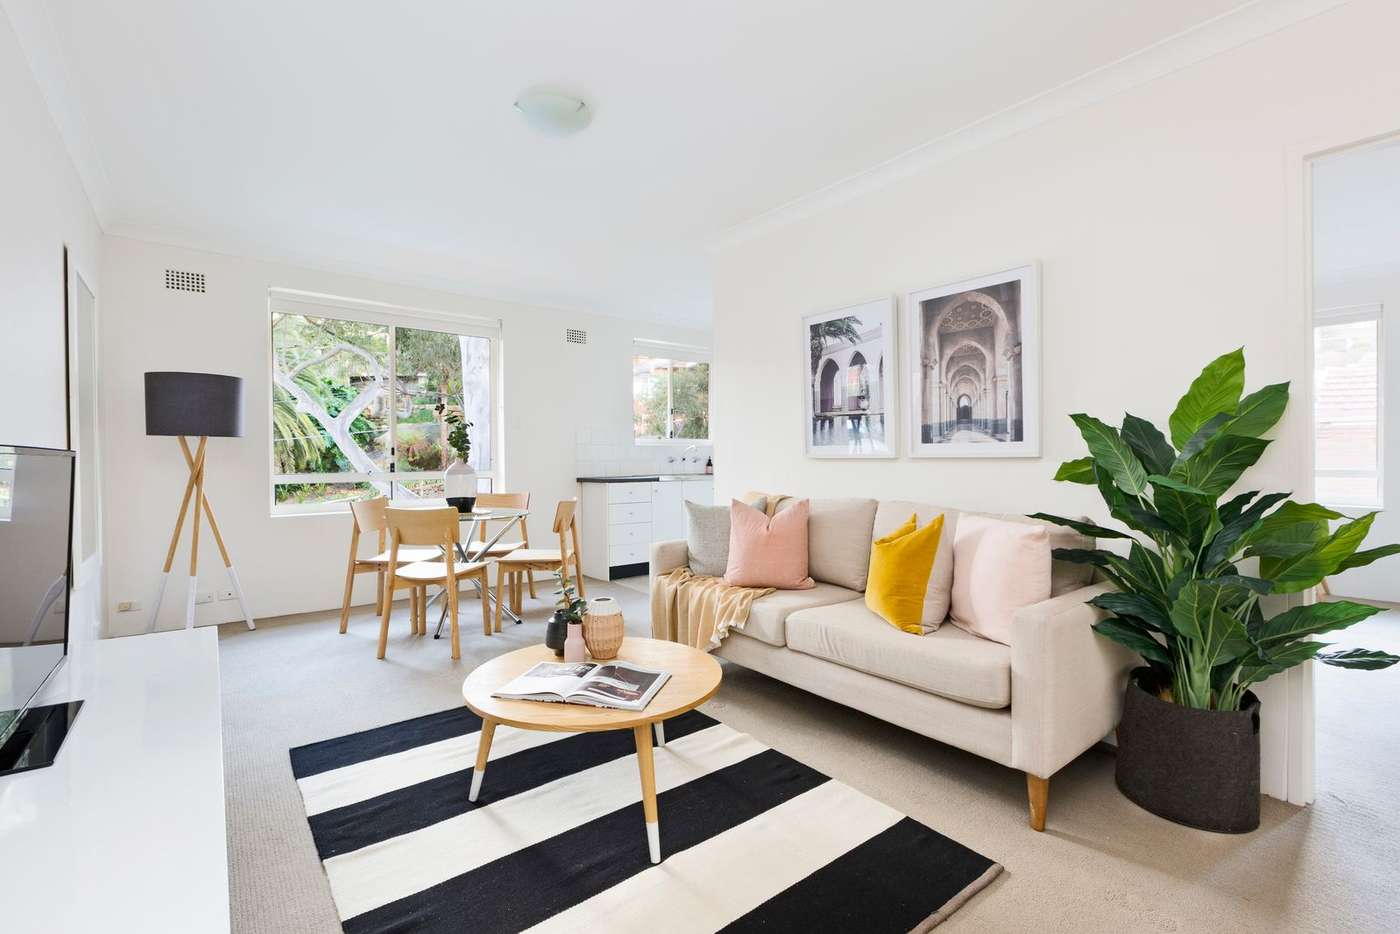 Main view of Homely apartment listing, 19/59 Lower Bent Street, Neutral Bay NSW 2089